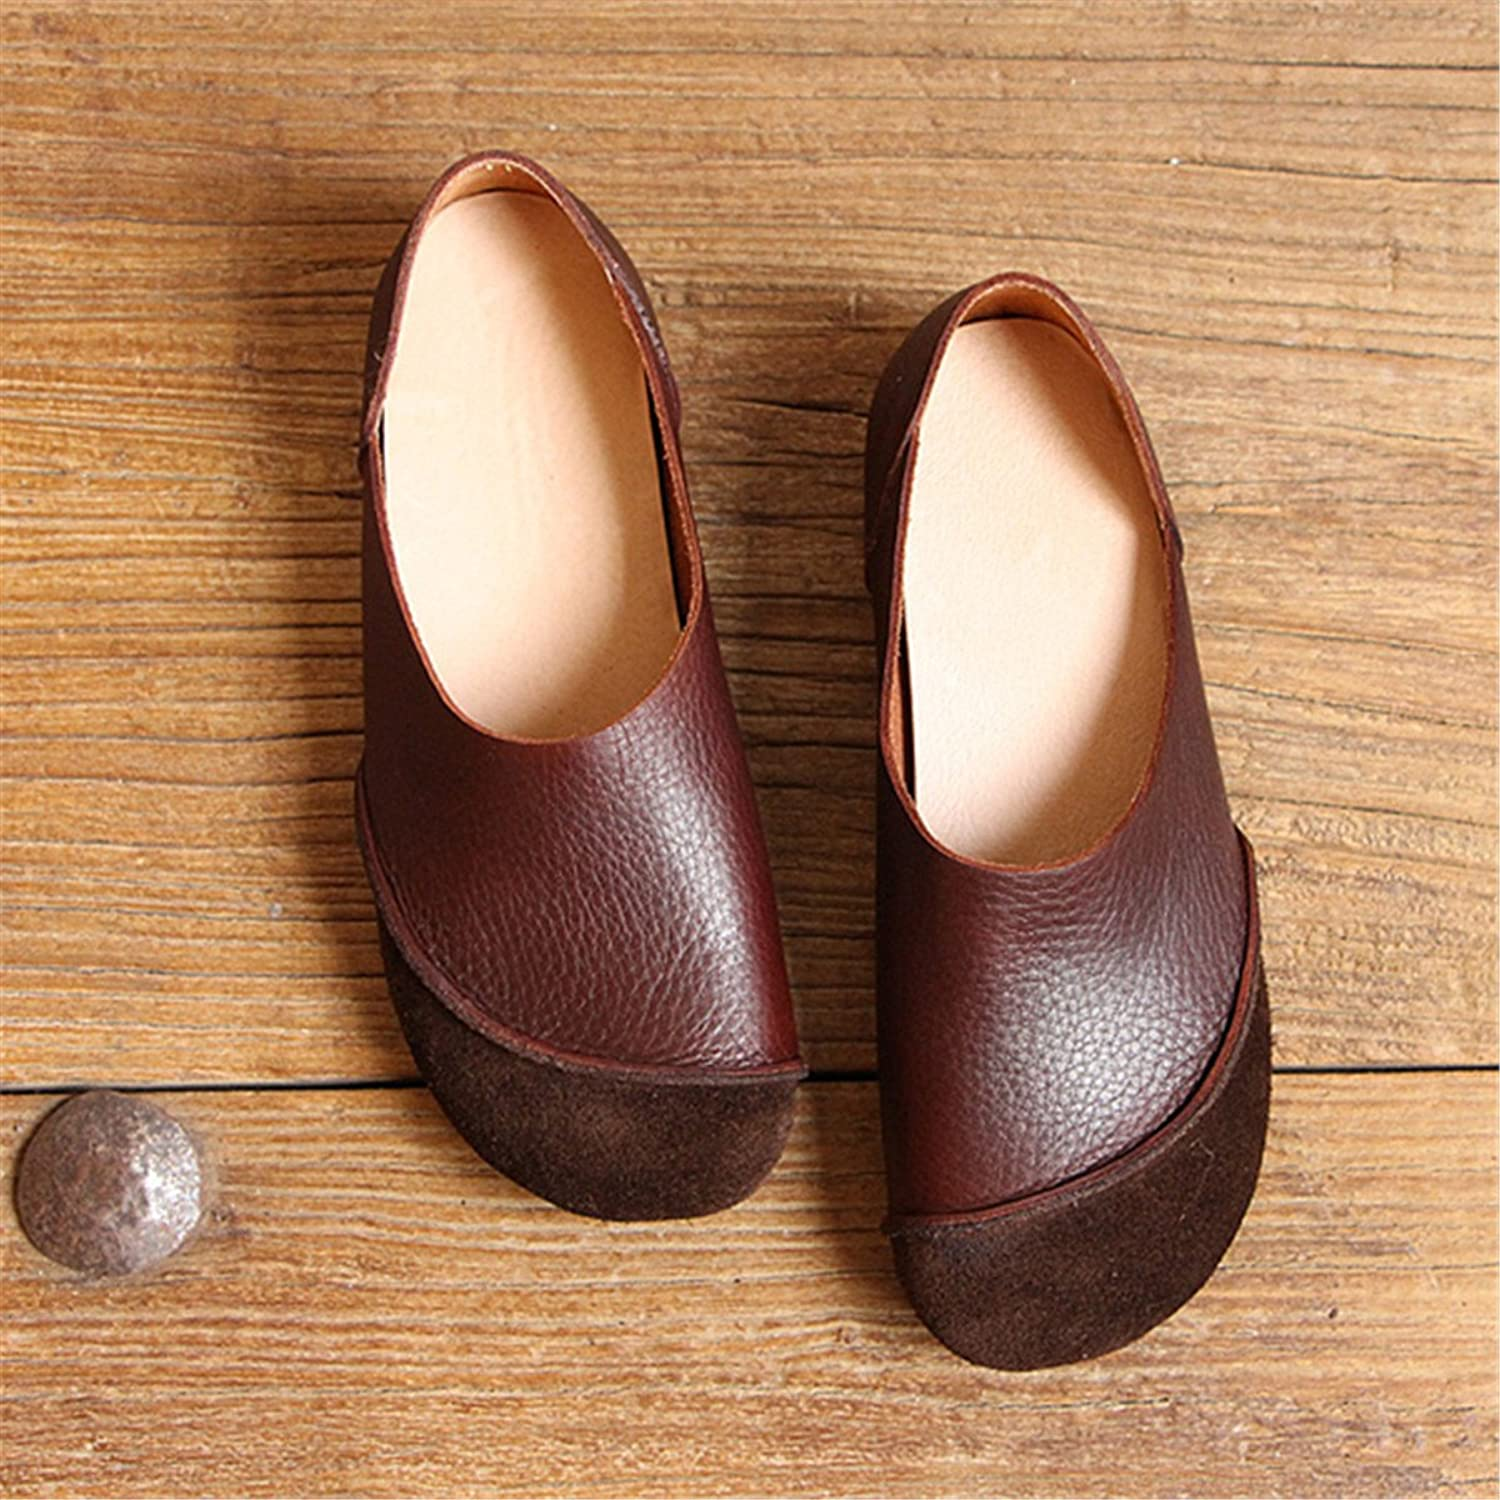 Socofy Flat Loafers,Women's Leather color Match Soft Slip On shoes,Round Toe Wild Driving Casual shoes Brown 8 B(M) US